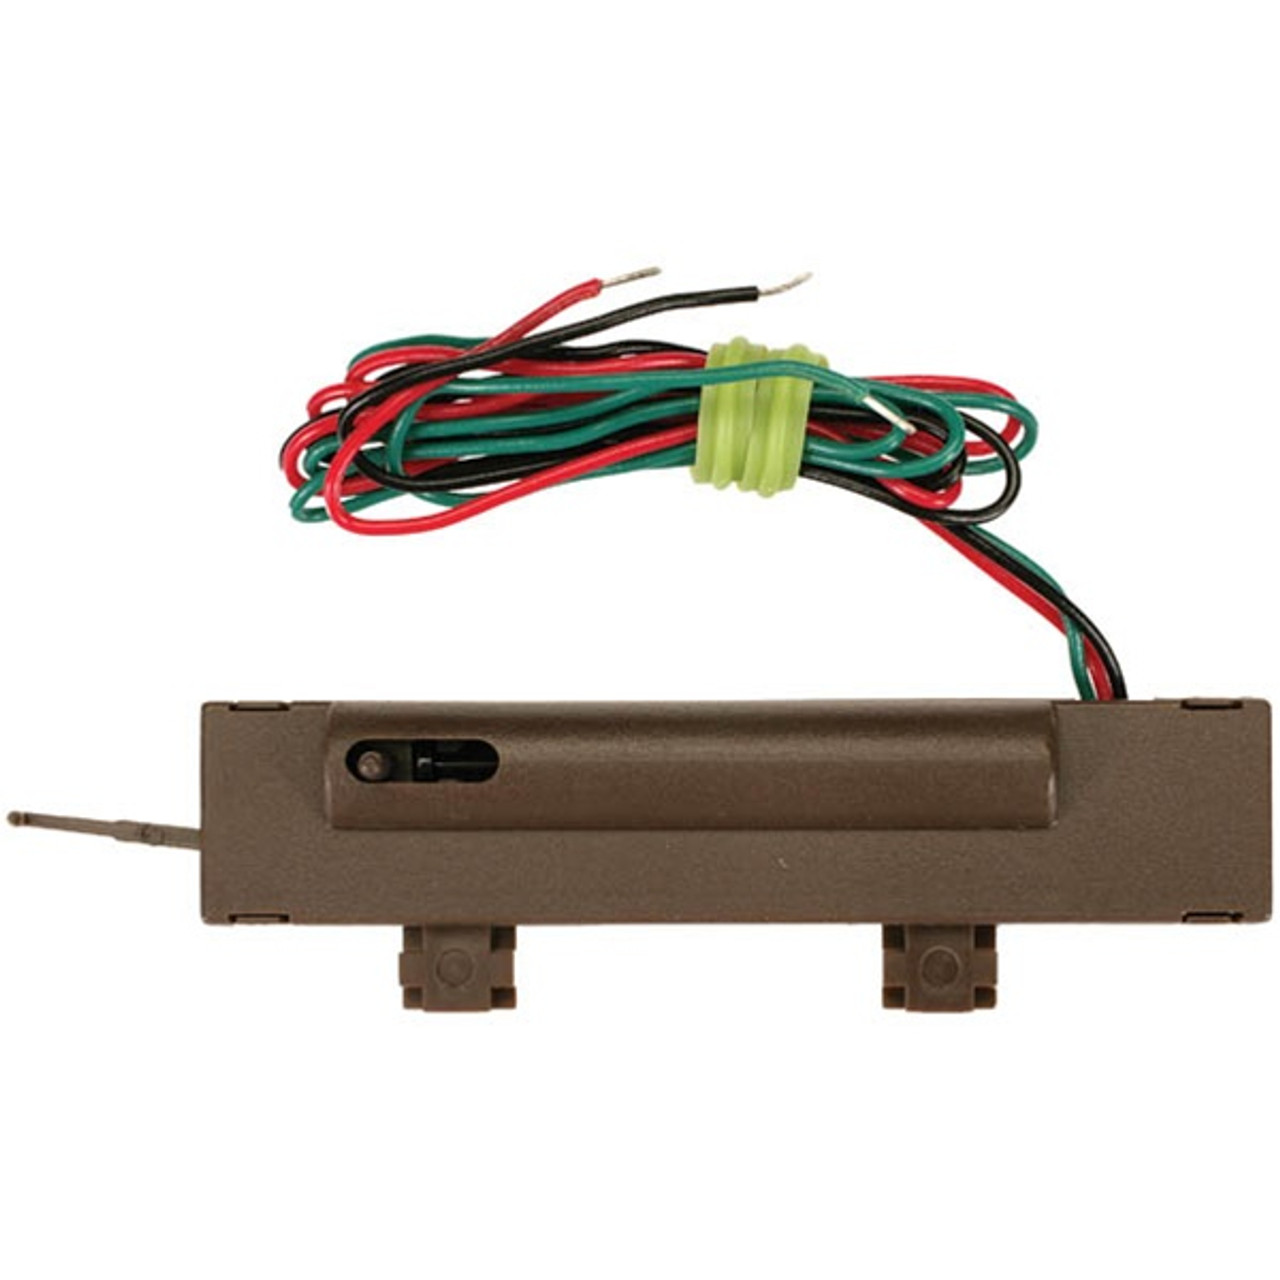 hight resolution of atlas ho 585 code 83 track right hand remote switch machineatlas ho 585 code 83 track